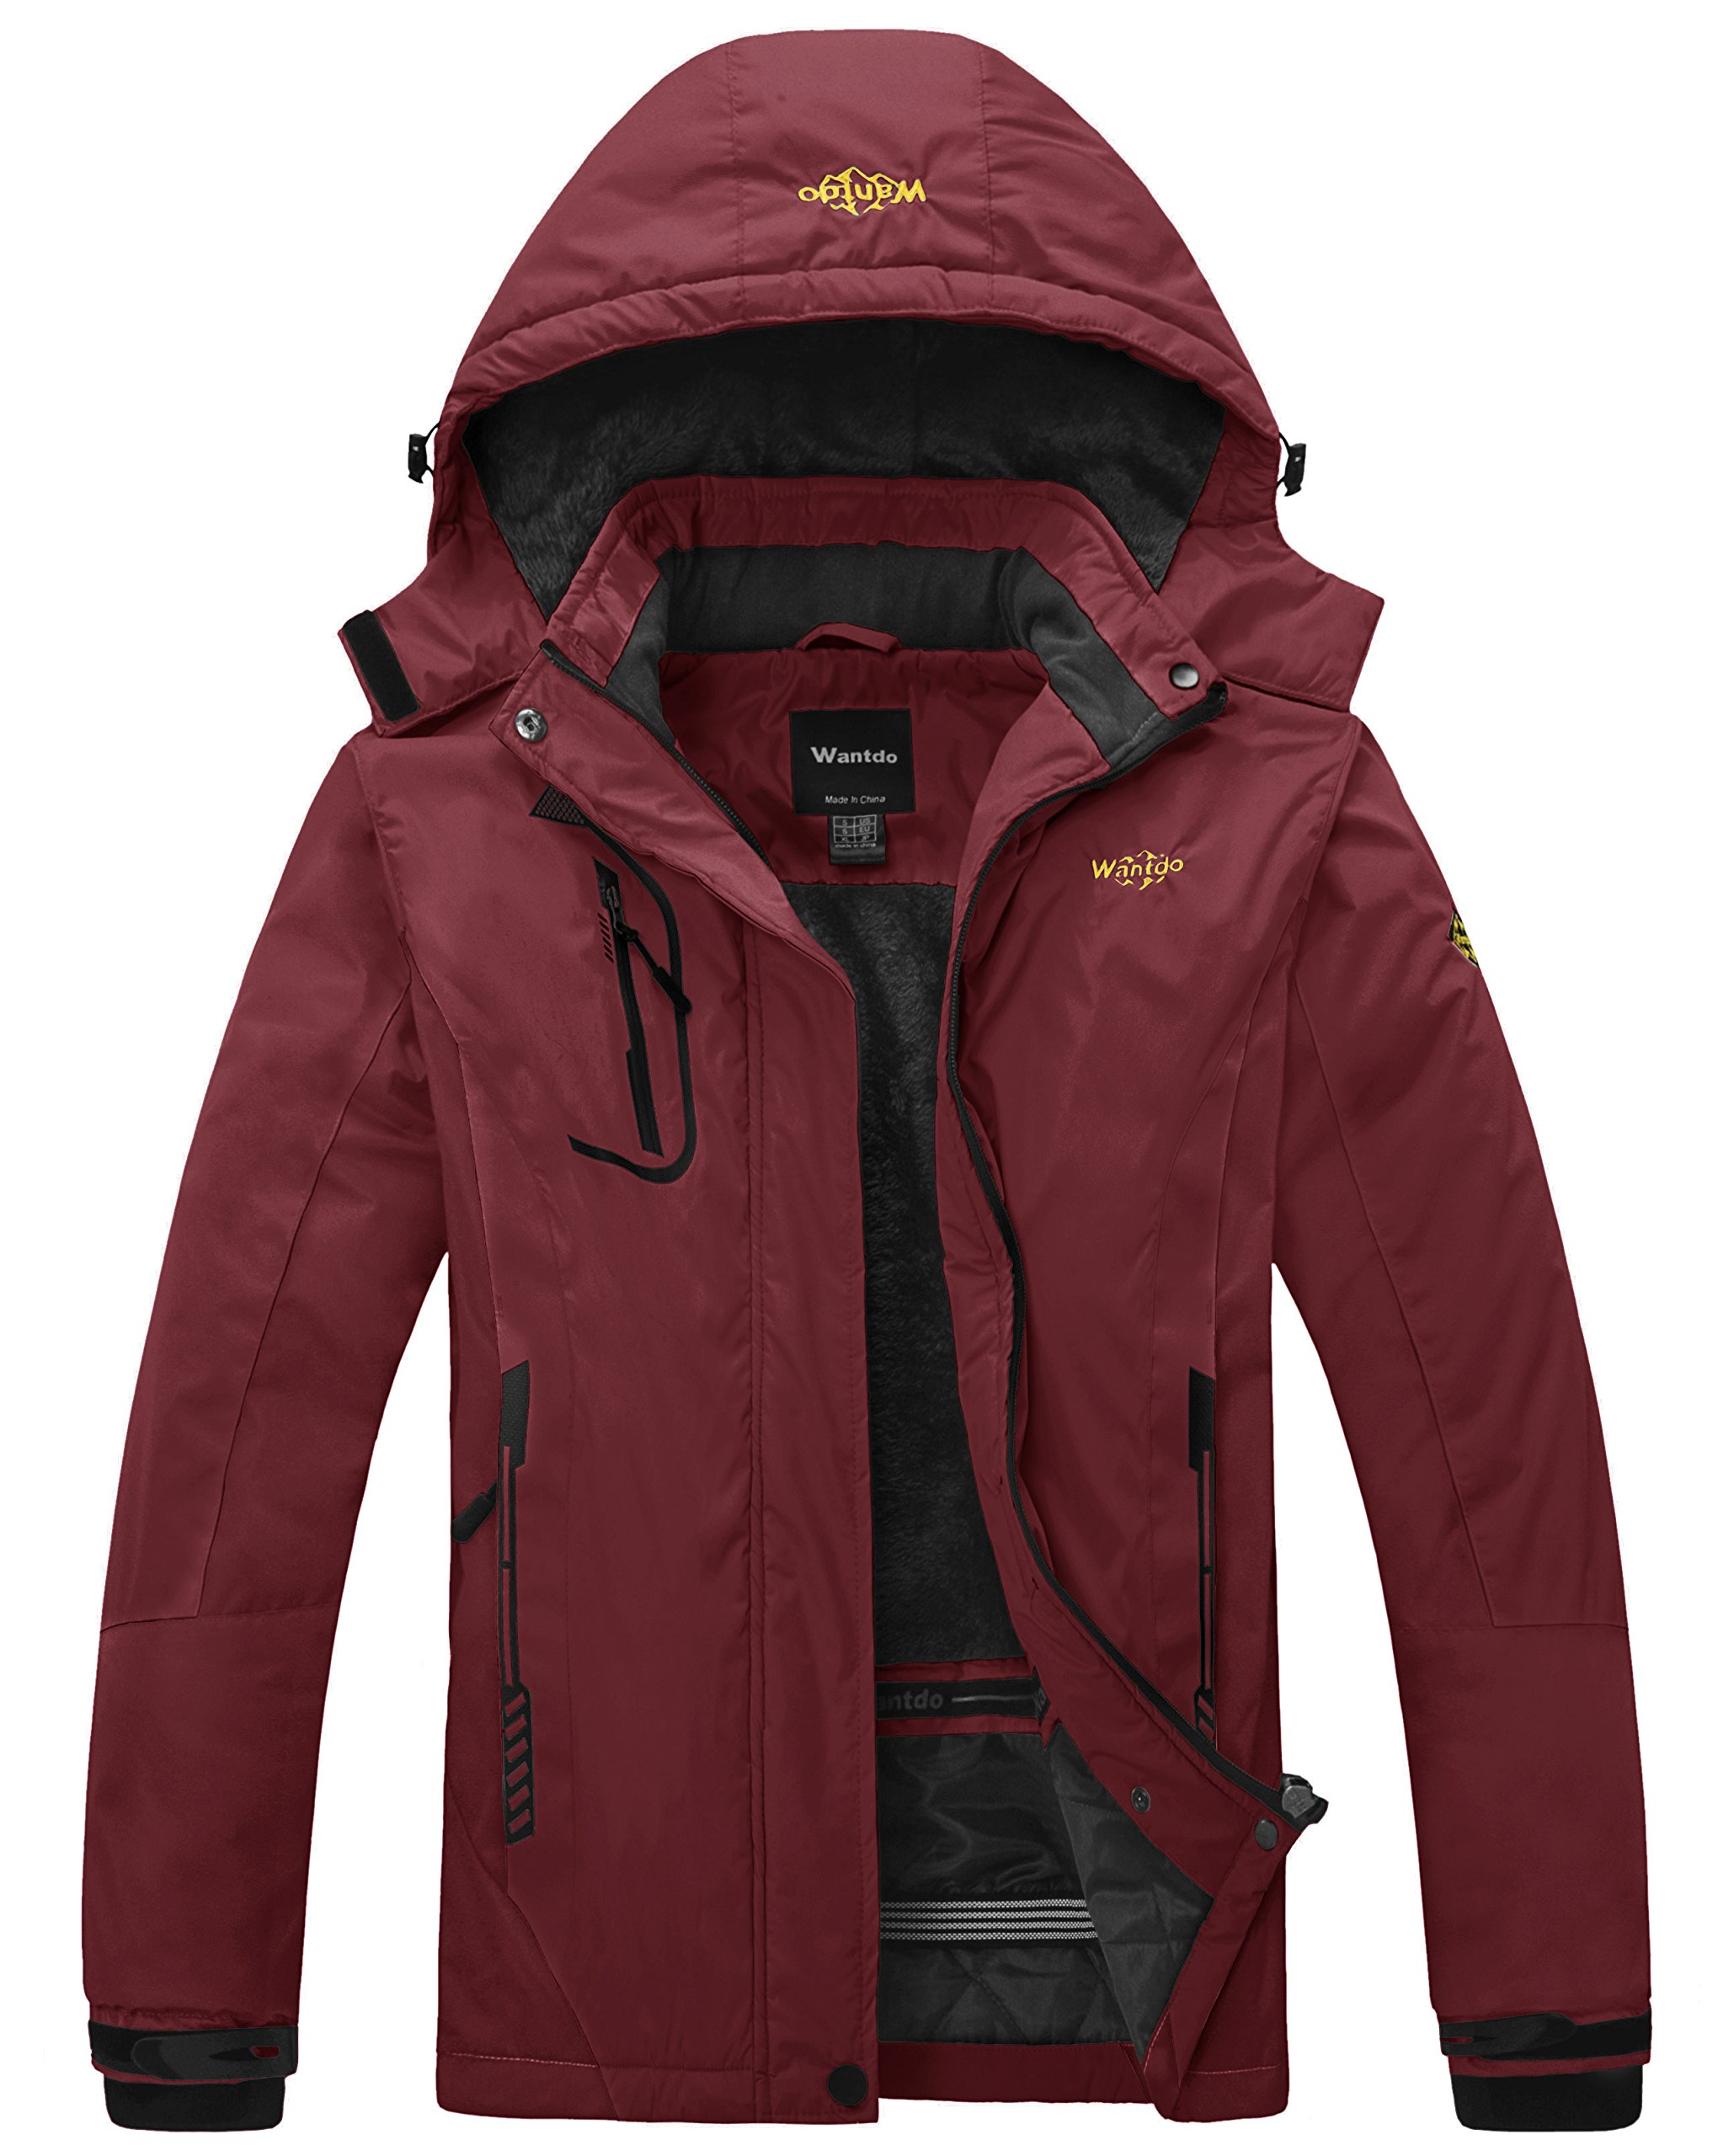 Wantdo Women's Waterproof Mountain Jacket Fleece Windproof Ski Jacket Winter Coat Wine Red Small by Wantdo